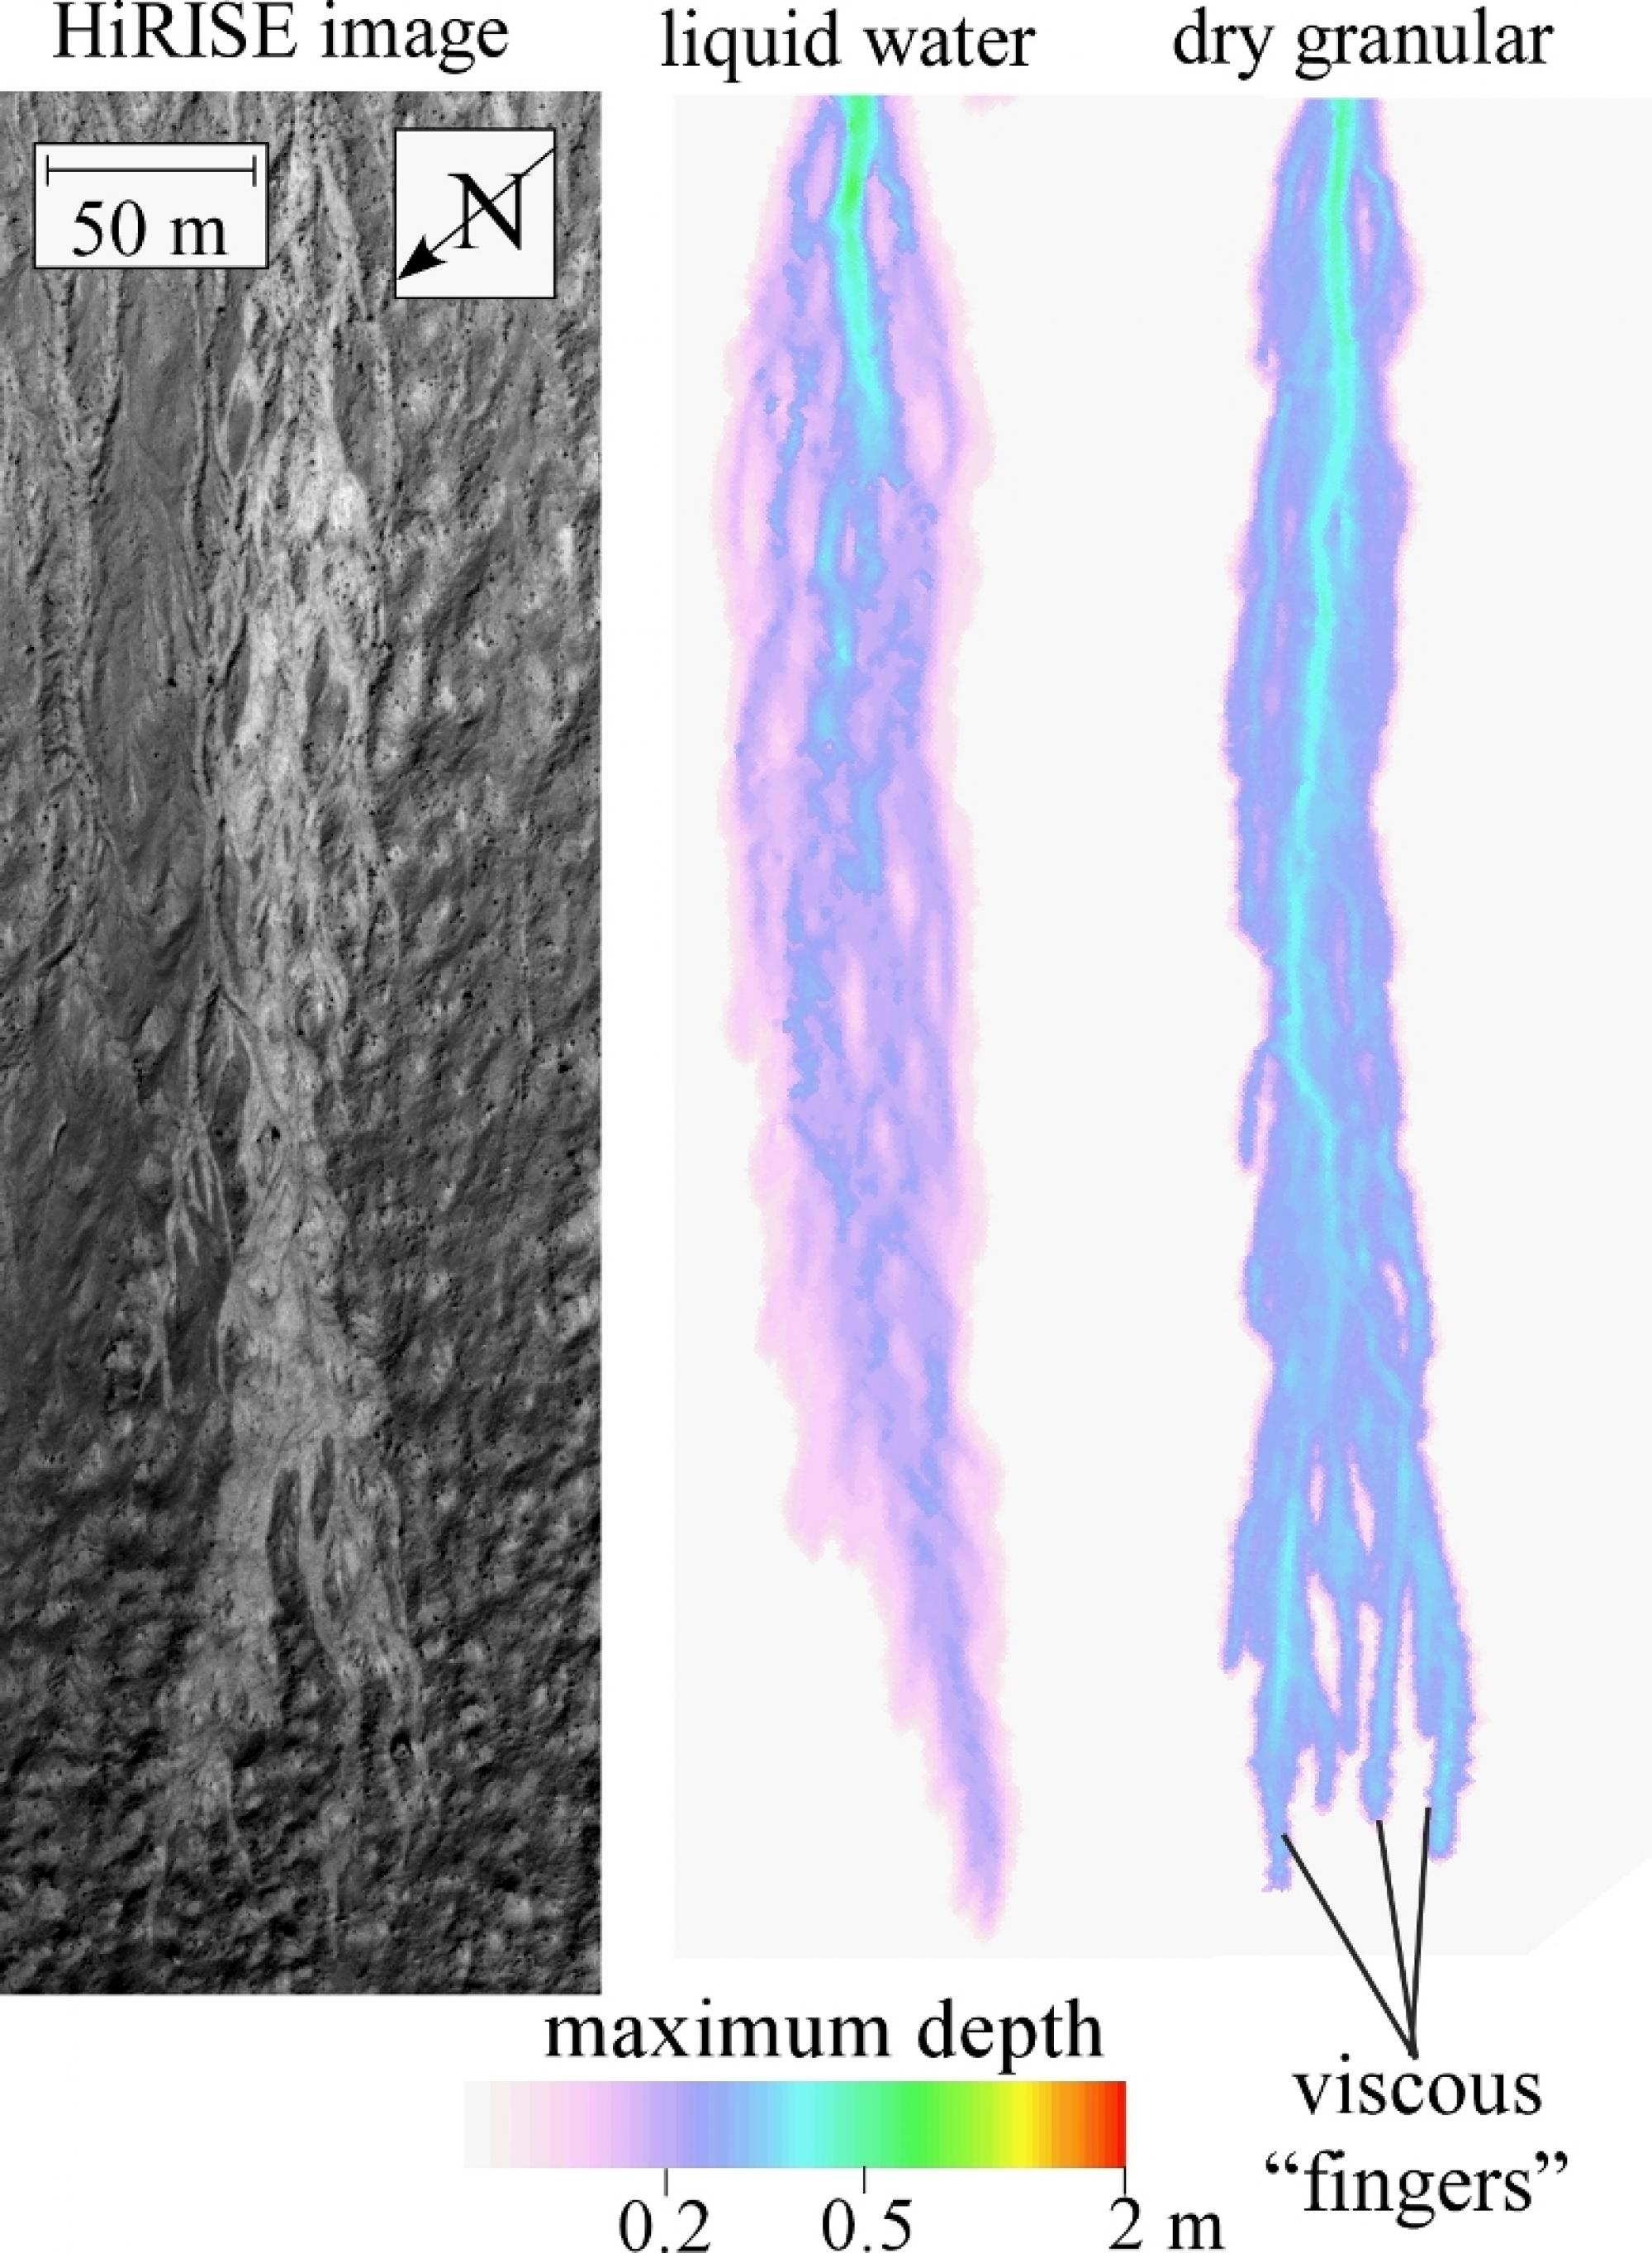 The image on the left is a portion of a HiRISE image showing a bright streak in a gully on the side of a crater in the Centauri Montes region of Mars. The two colored images were generated by the researchers' numerical computer model. The middle image sho